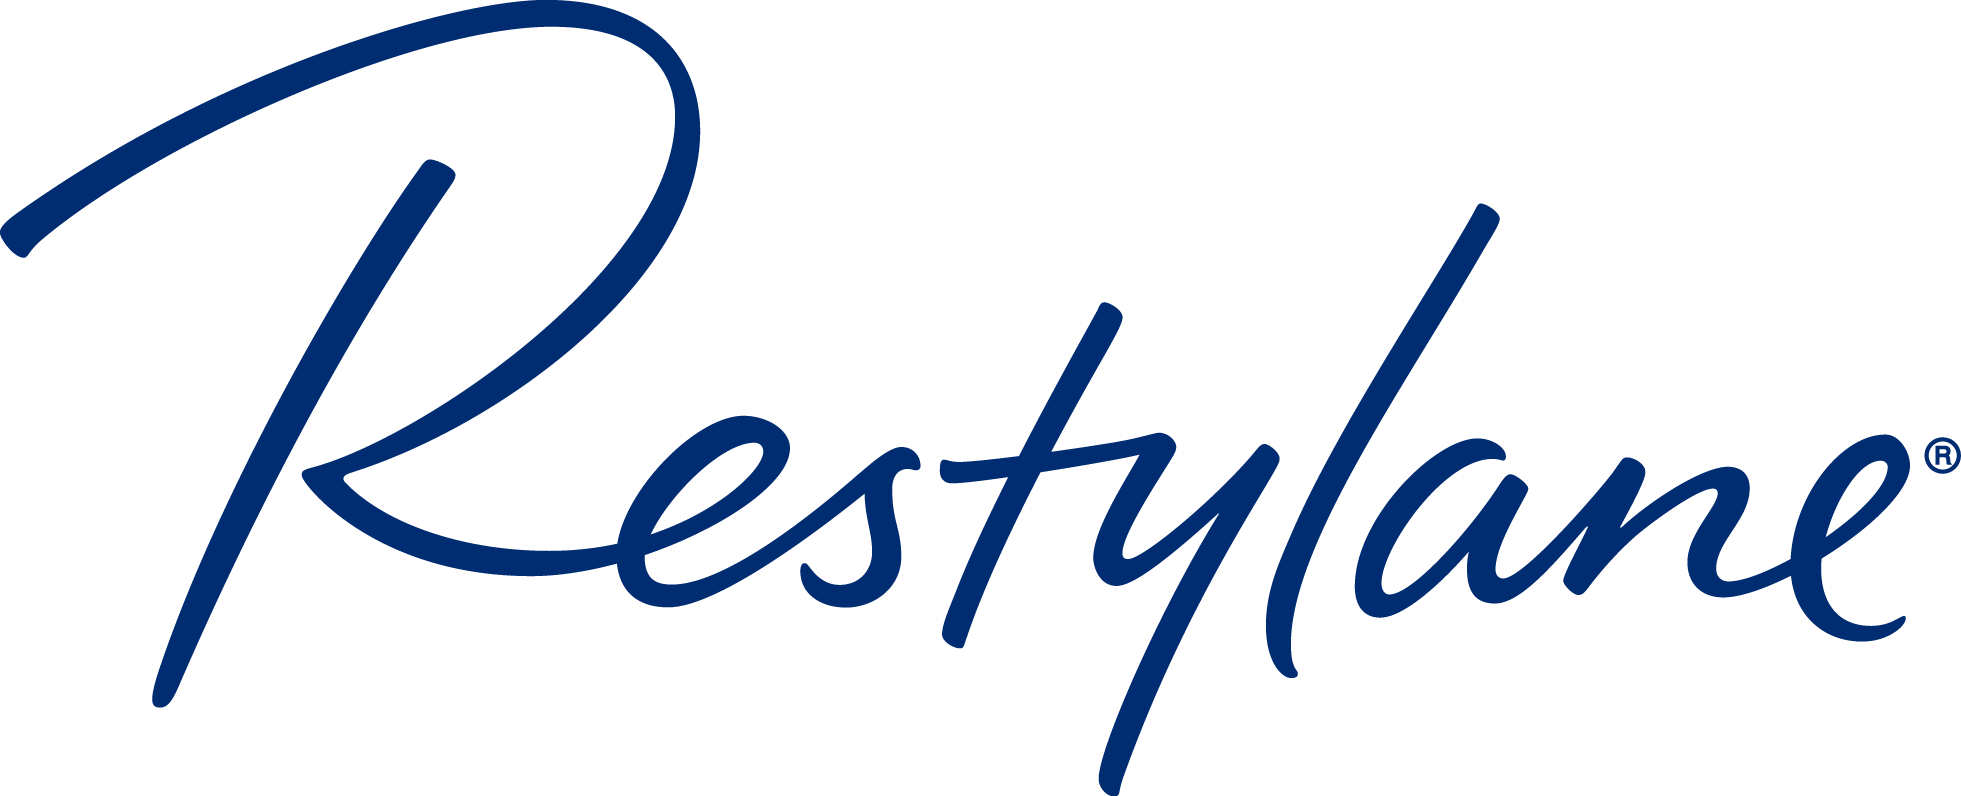 Restylane Treatment in San Diego